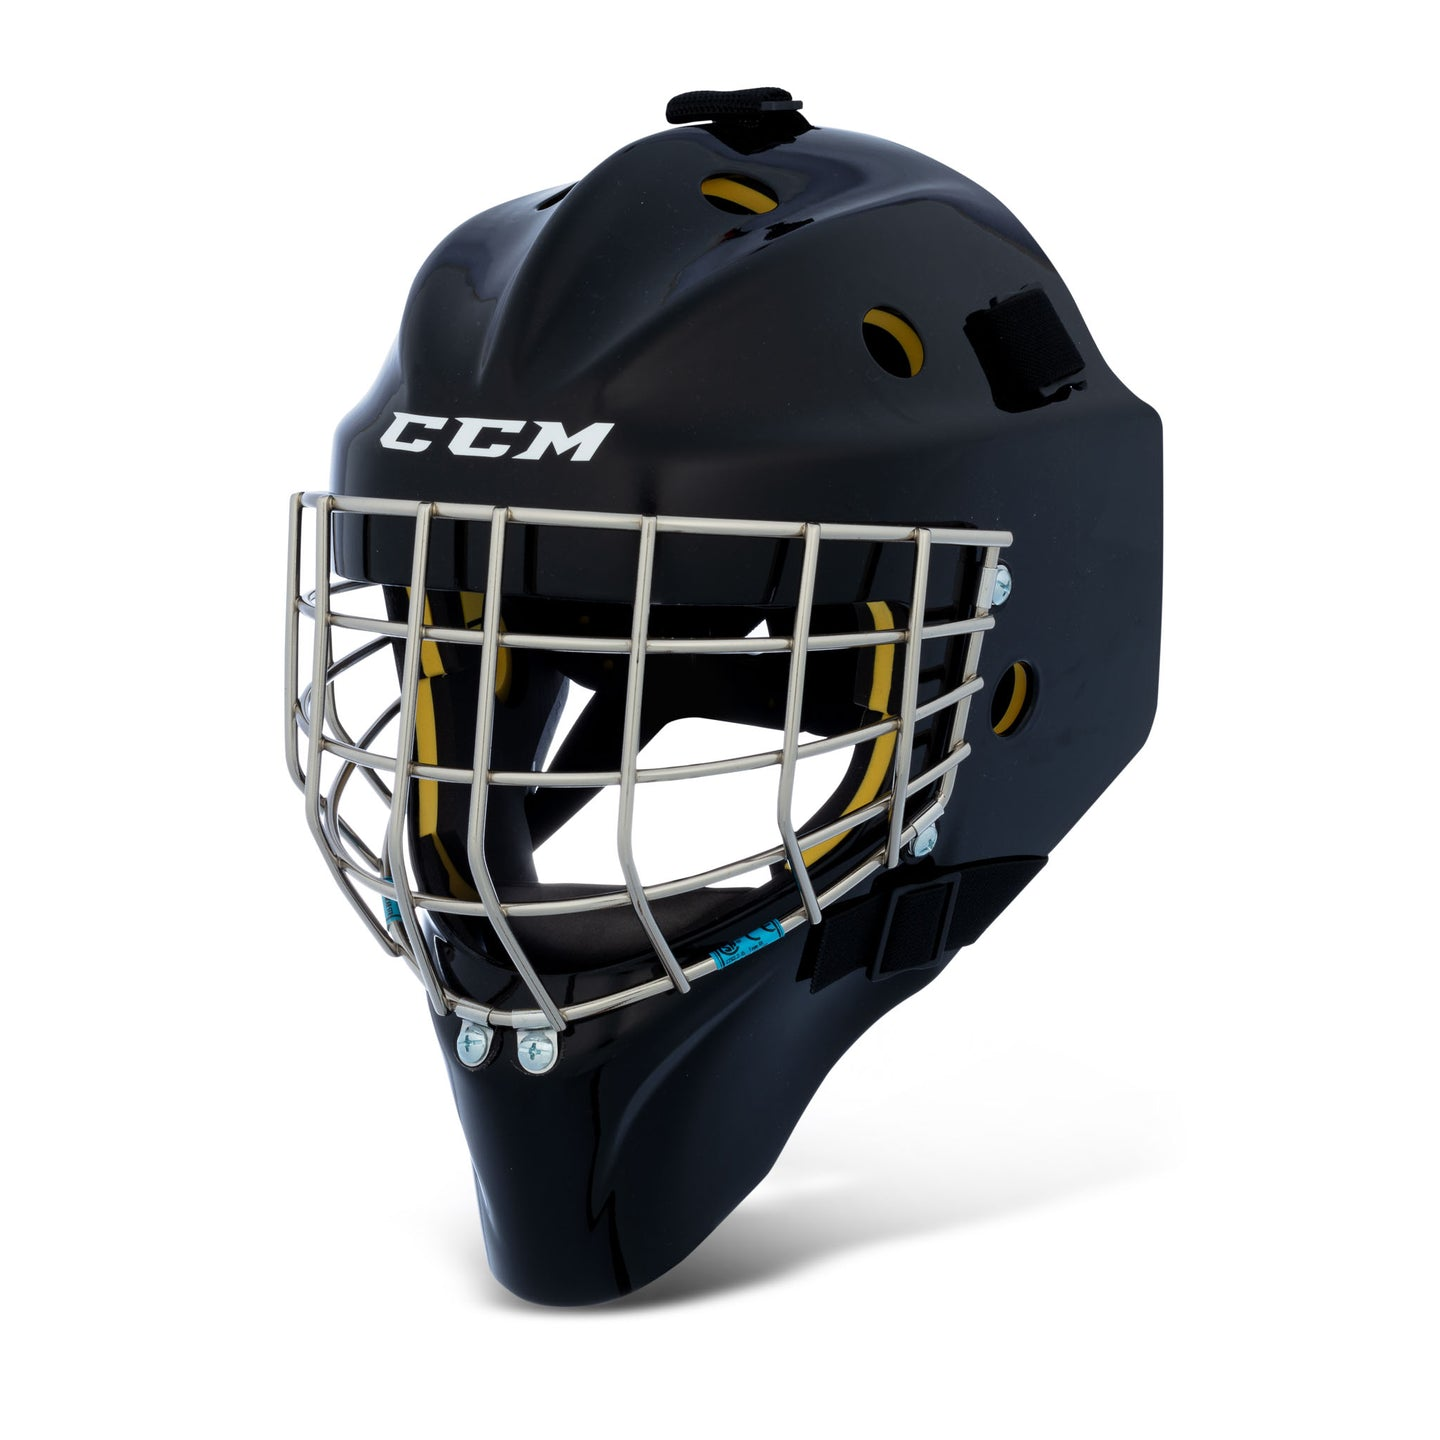 CCM Axis A1.5 Youth Goalie Mask